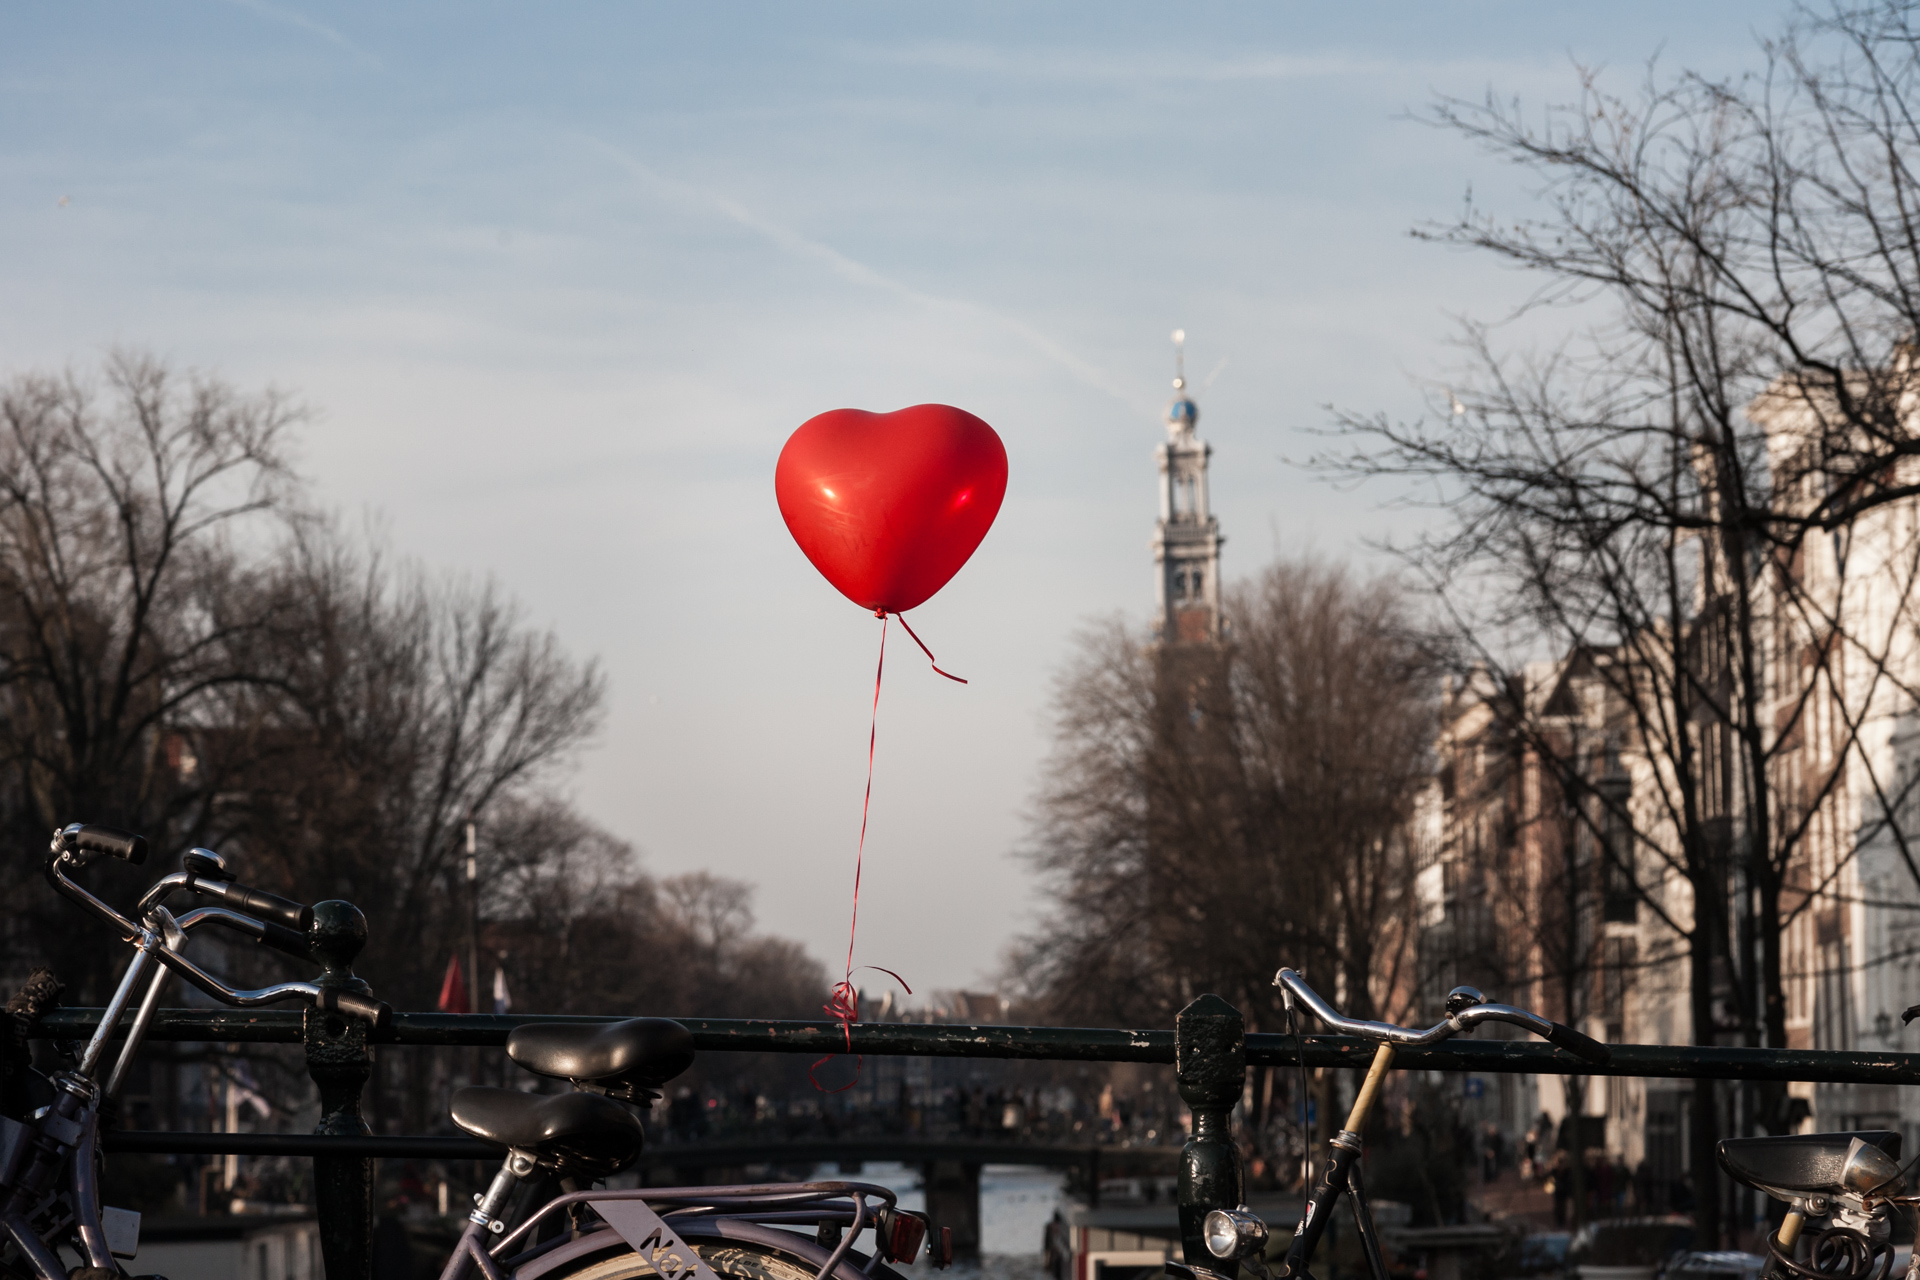 A heart-shaped balloon tethered to a bridge in Amsterdam